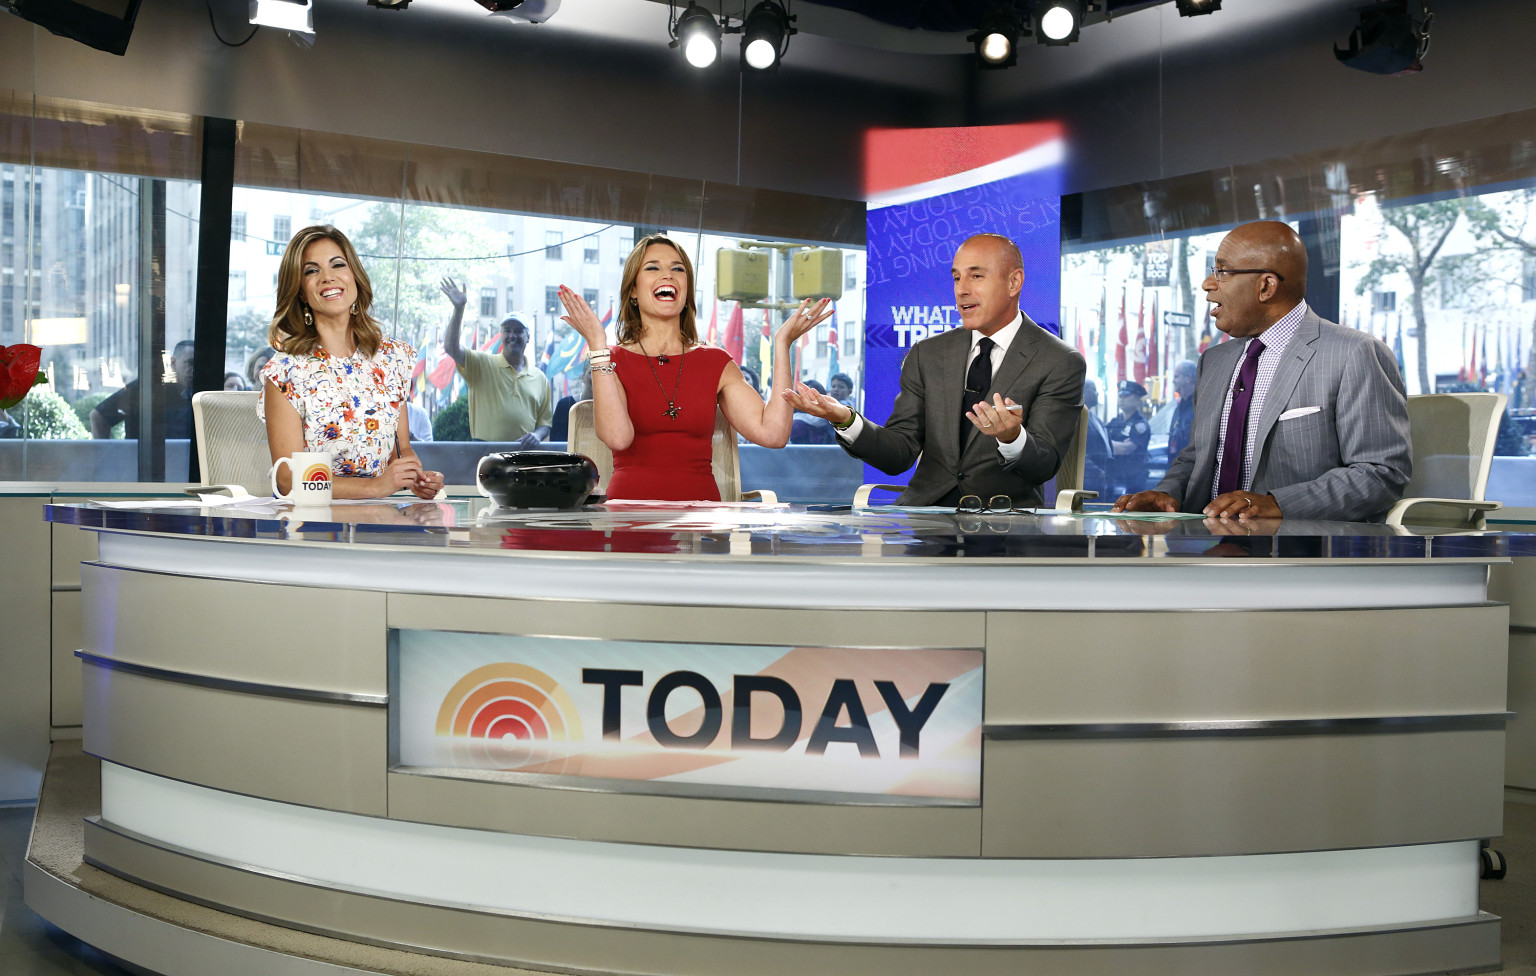 nbc today show essay Watch should voicemail be banned today viewers say from nbc today show a tweet calling for a ban on voicemails has quickly gathered support on social.